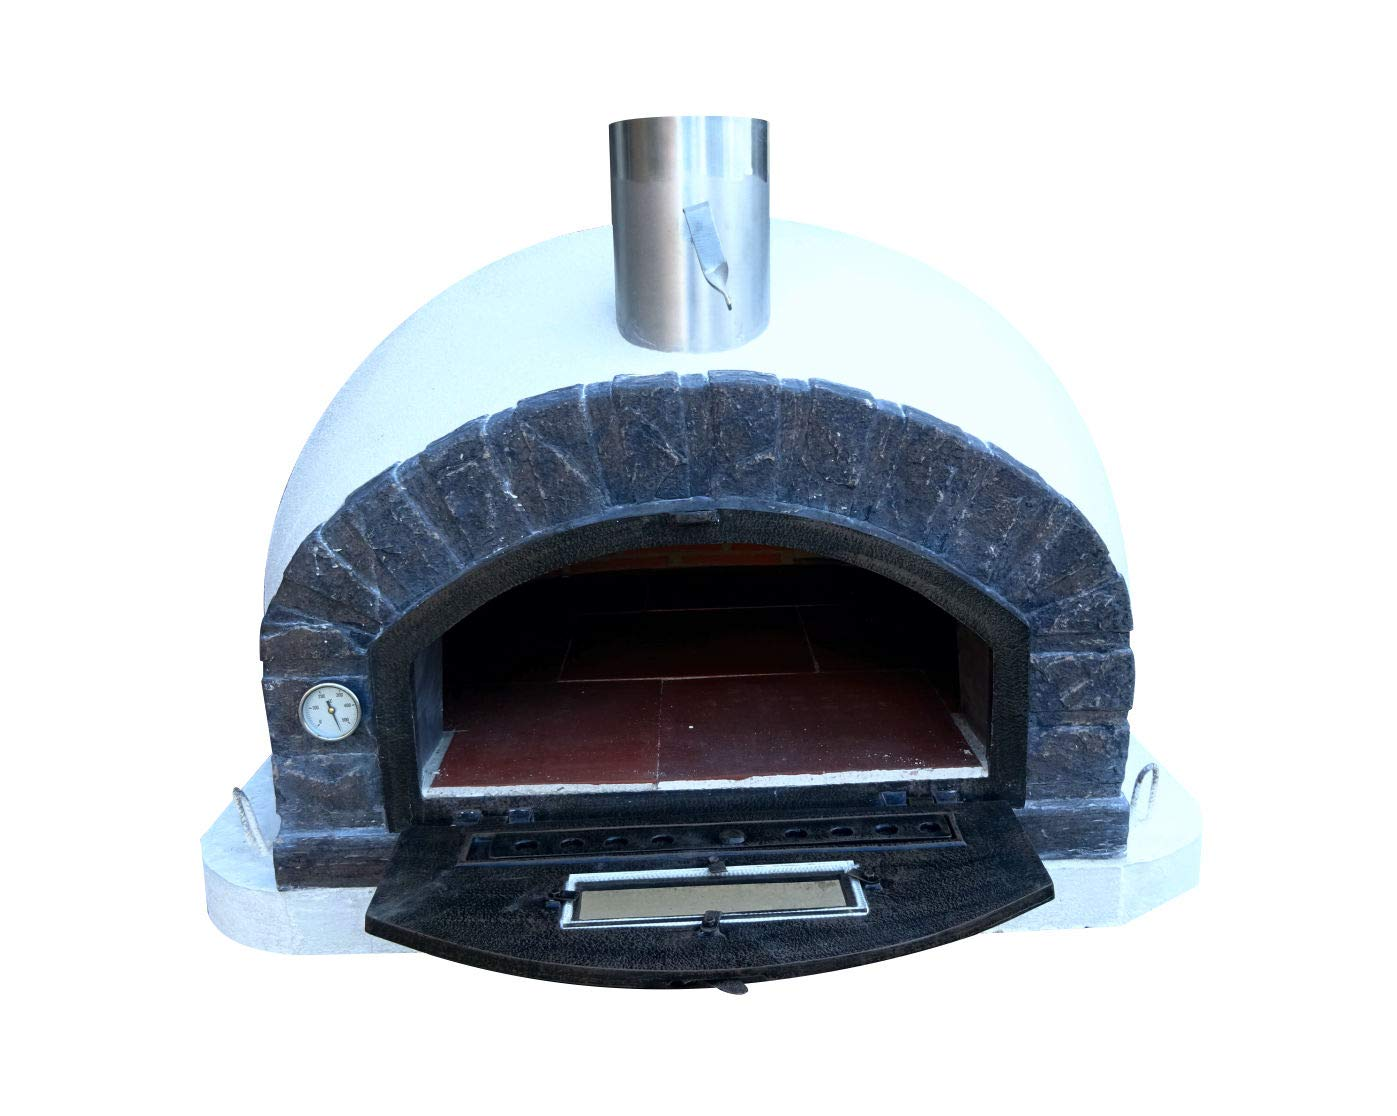 Authentic Pizza Ovens - BRAZZA Premium Wood FIRE Oven